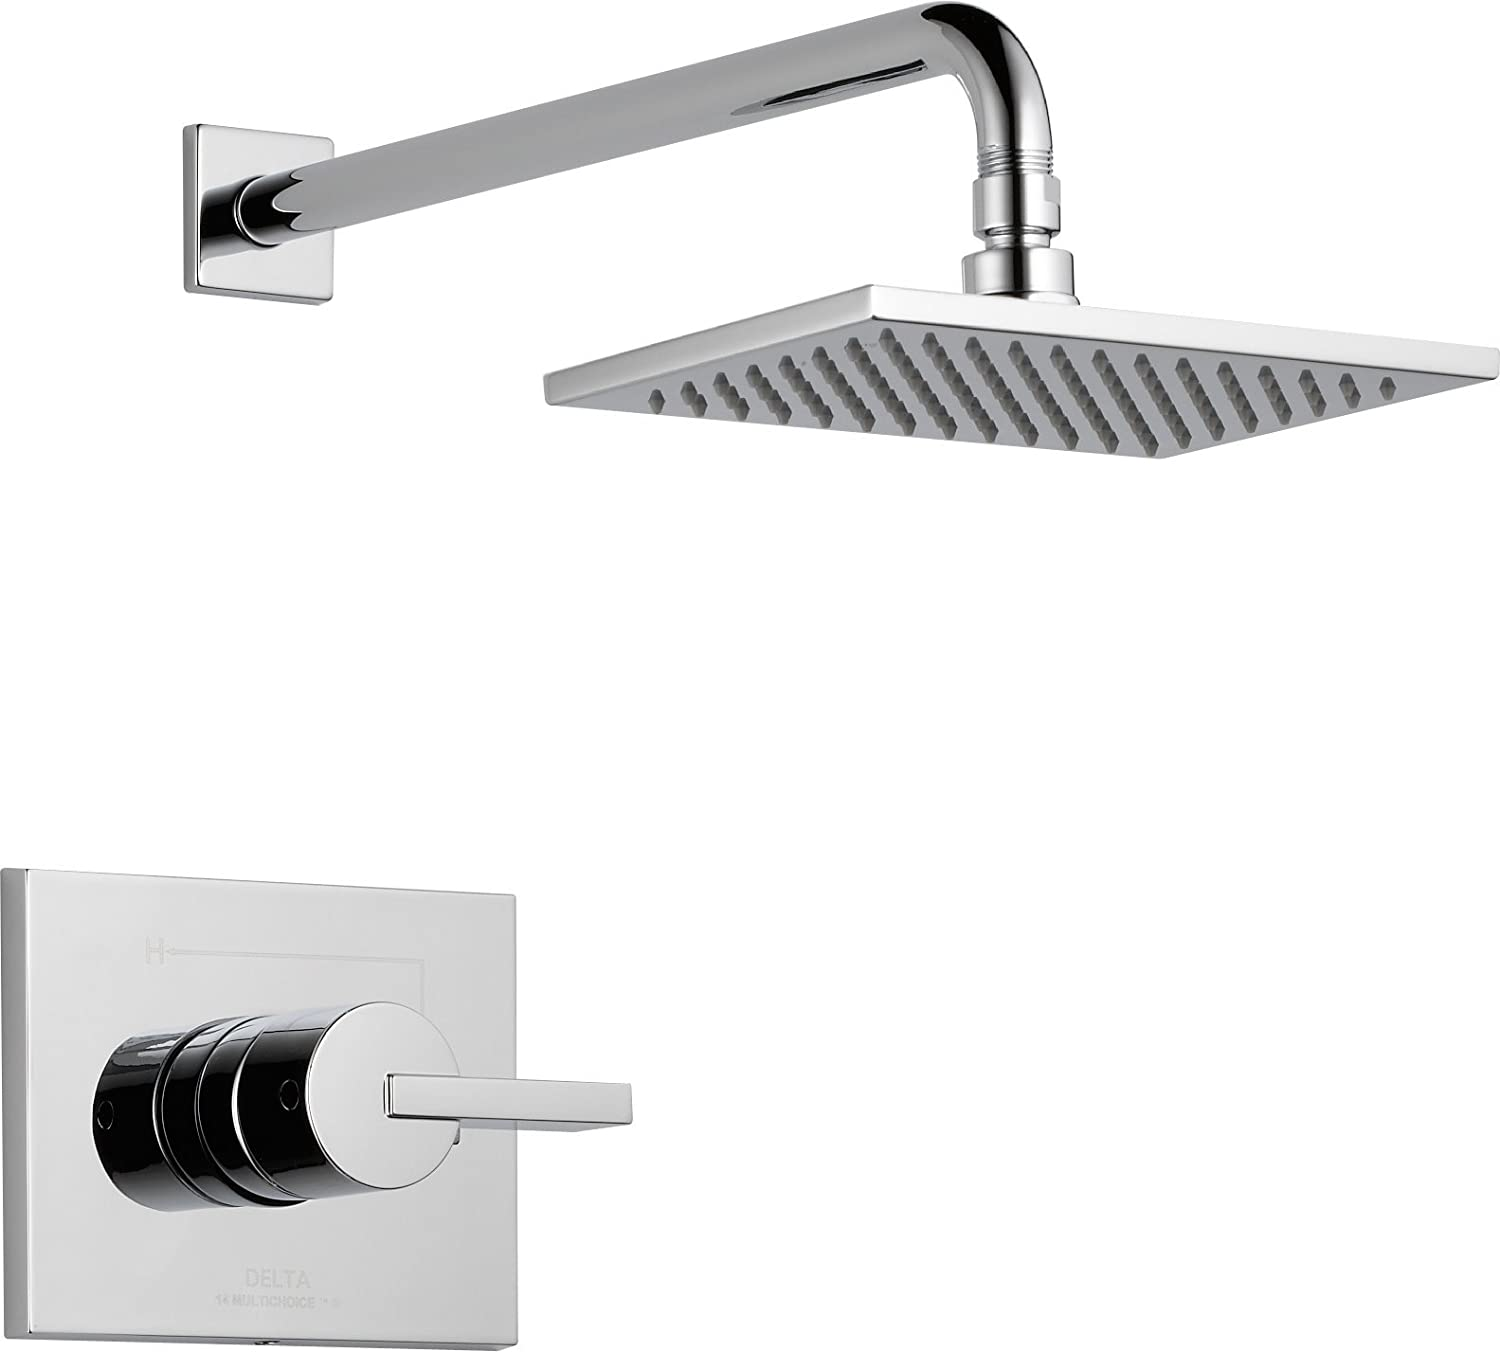 T14253 Single Function Shower Single Spray Included Image 1